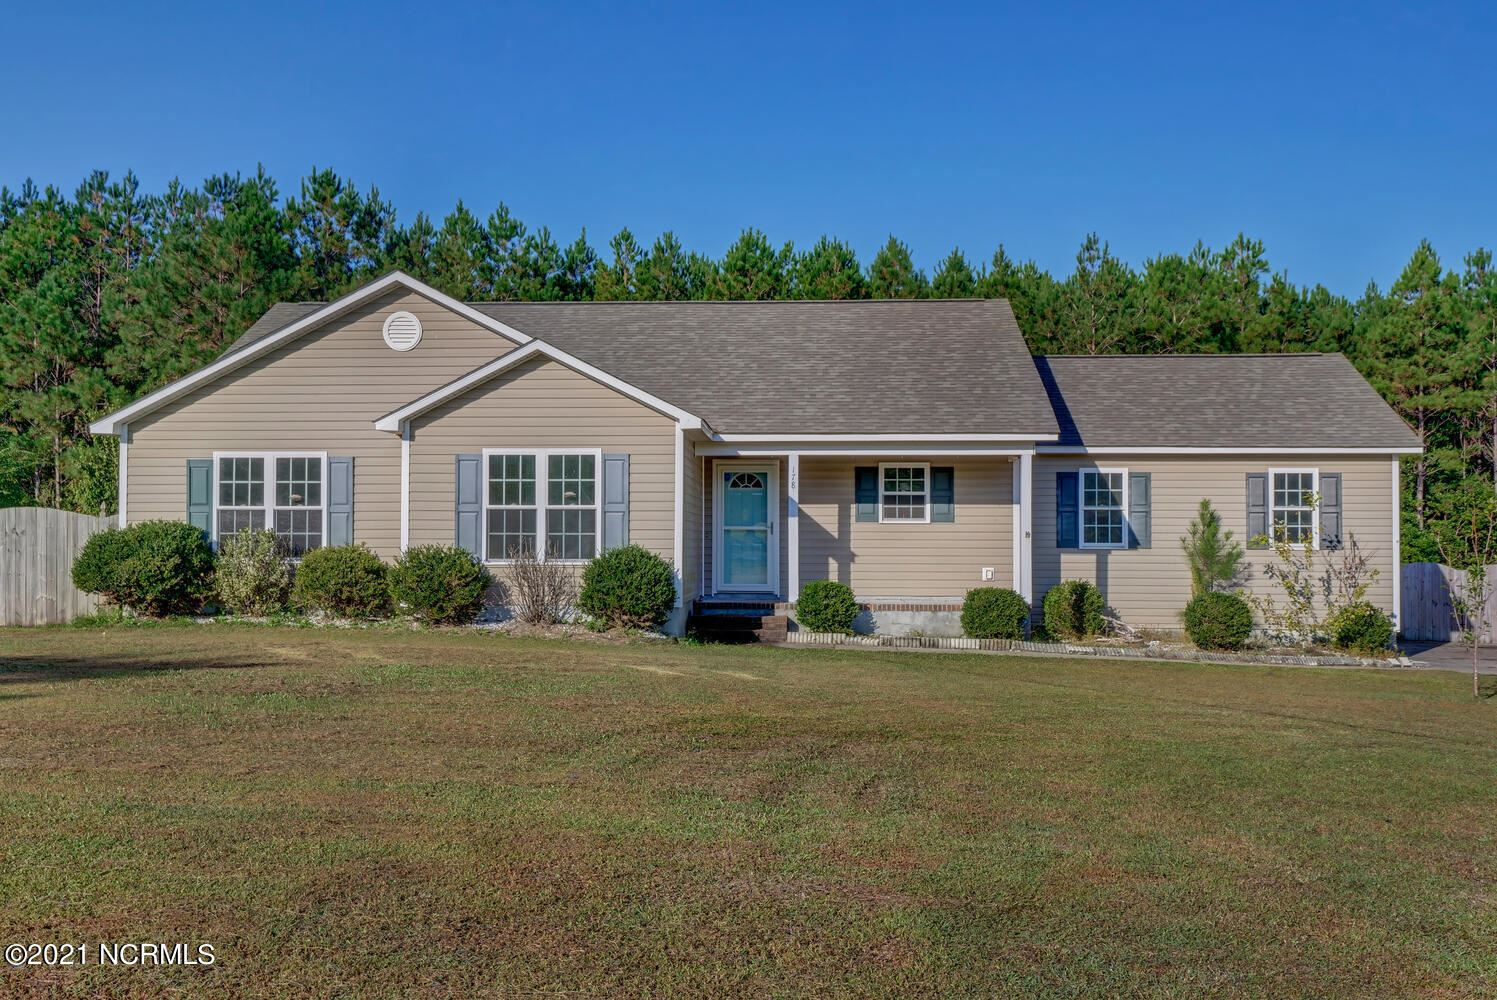 Photo of 178 Fire Tower Road, Richlands, NC 28574 (MLS # 100295692)